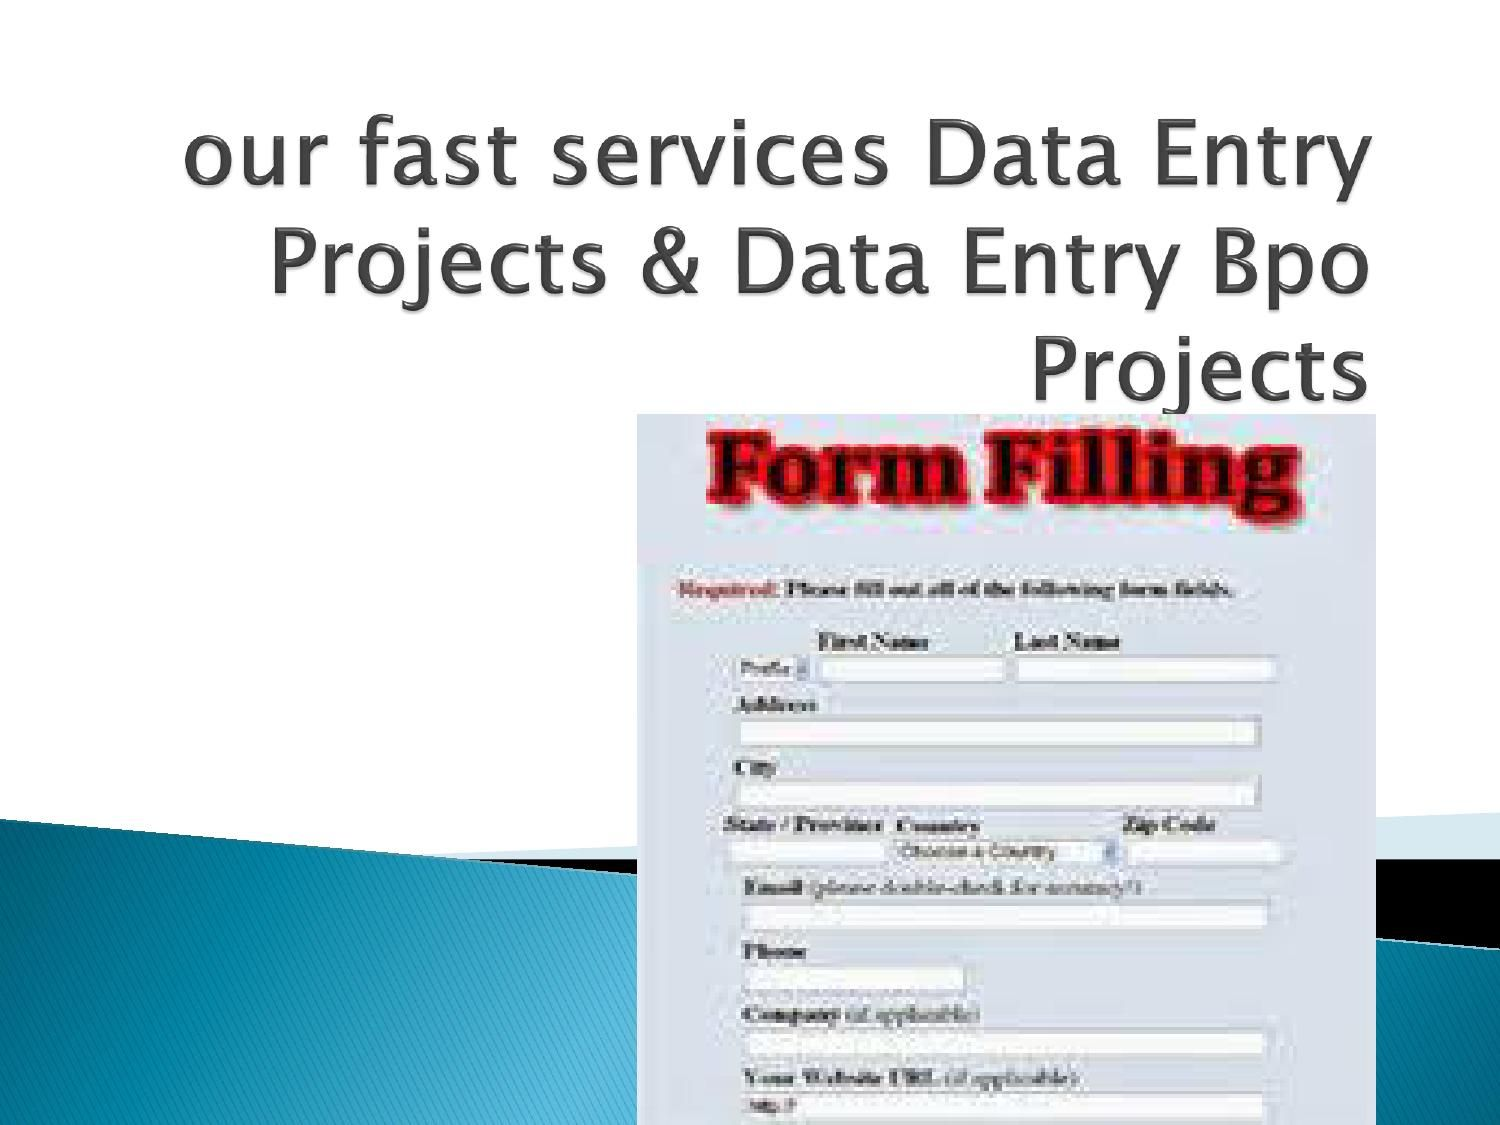 Form filling projects from home